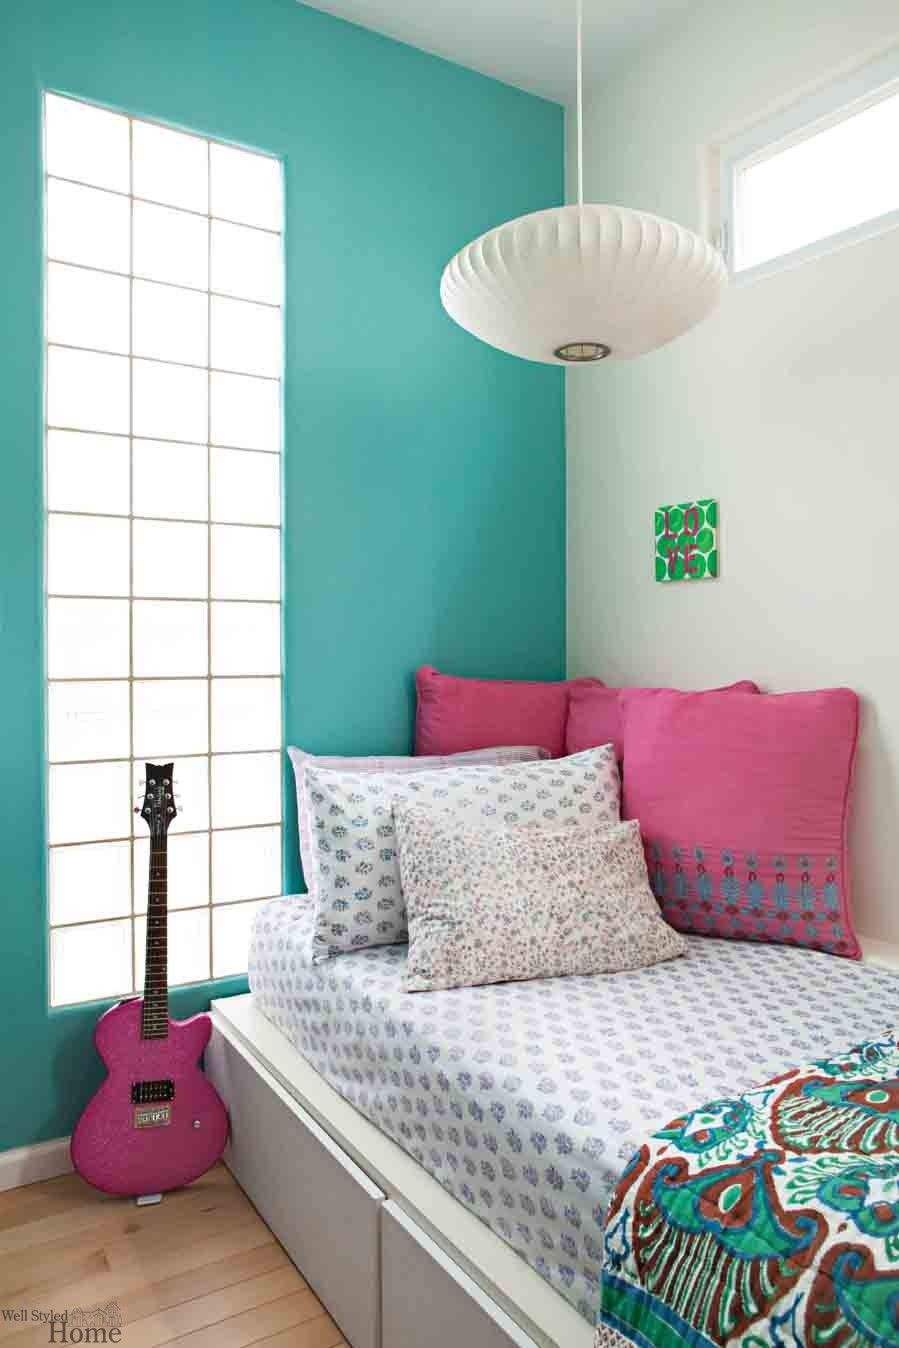 Wall paint colors for girls bedroom - Girly Tips For A Teen Girls Bedroom Decor Ideas I Love This Bedroom Except For The Blanket The Pink Pillow The Guitar And The Walls Being Two Colors